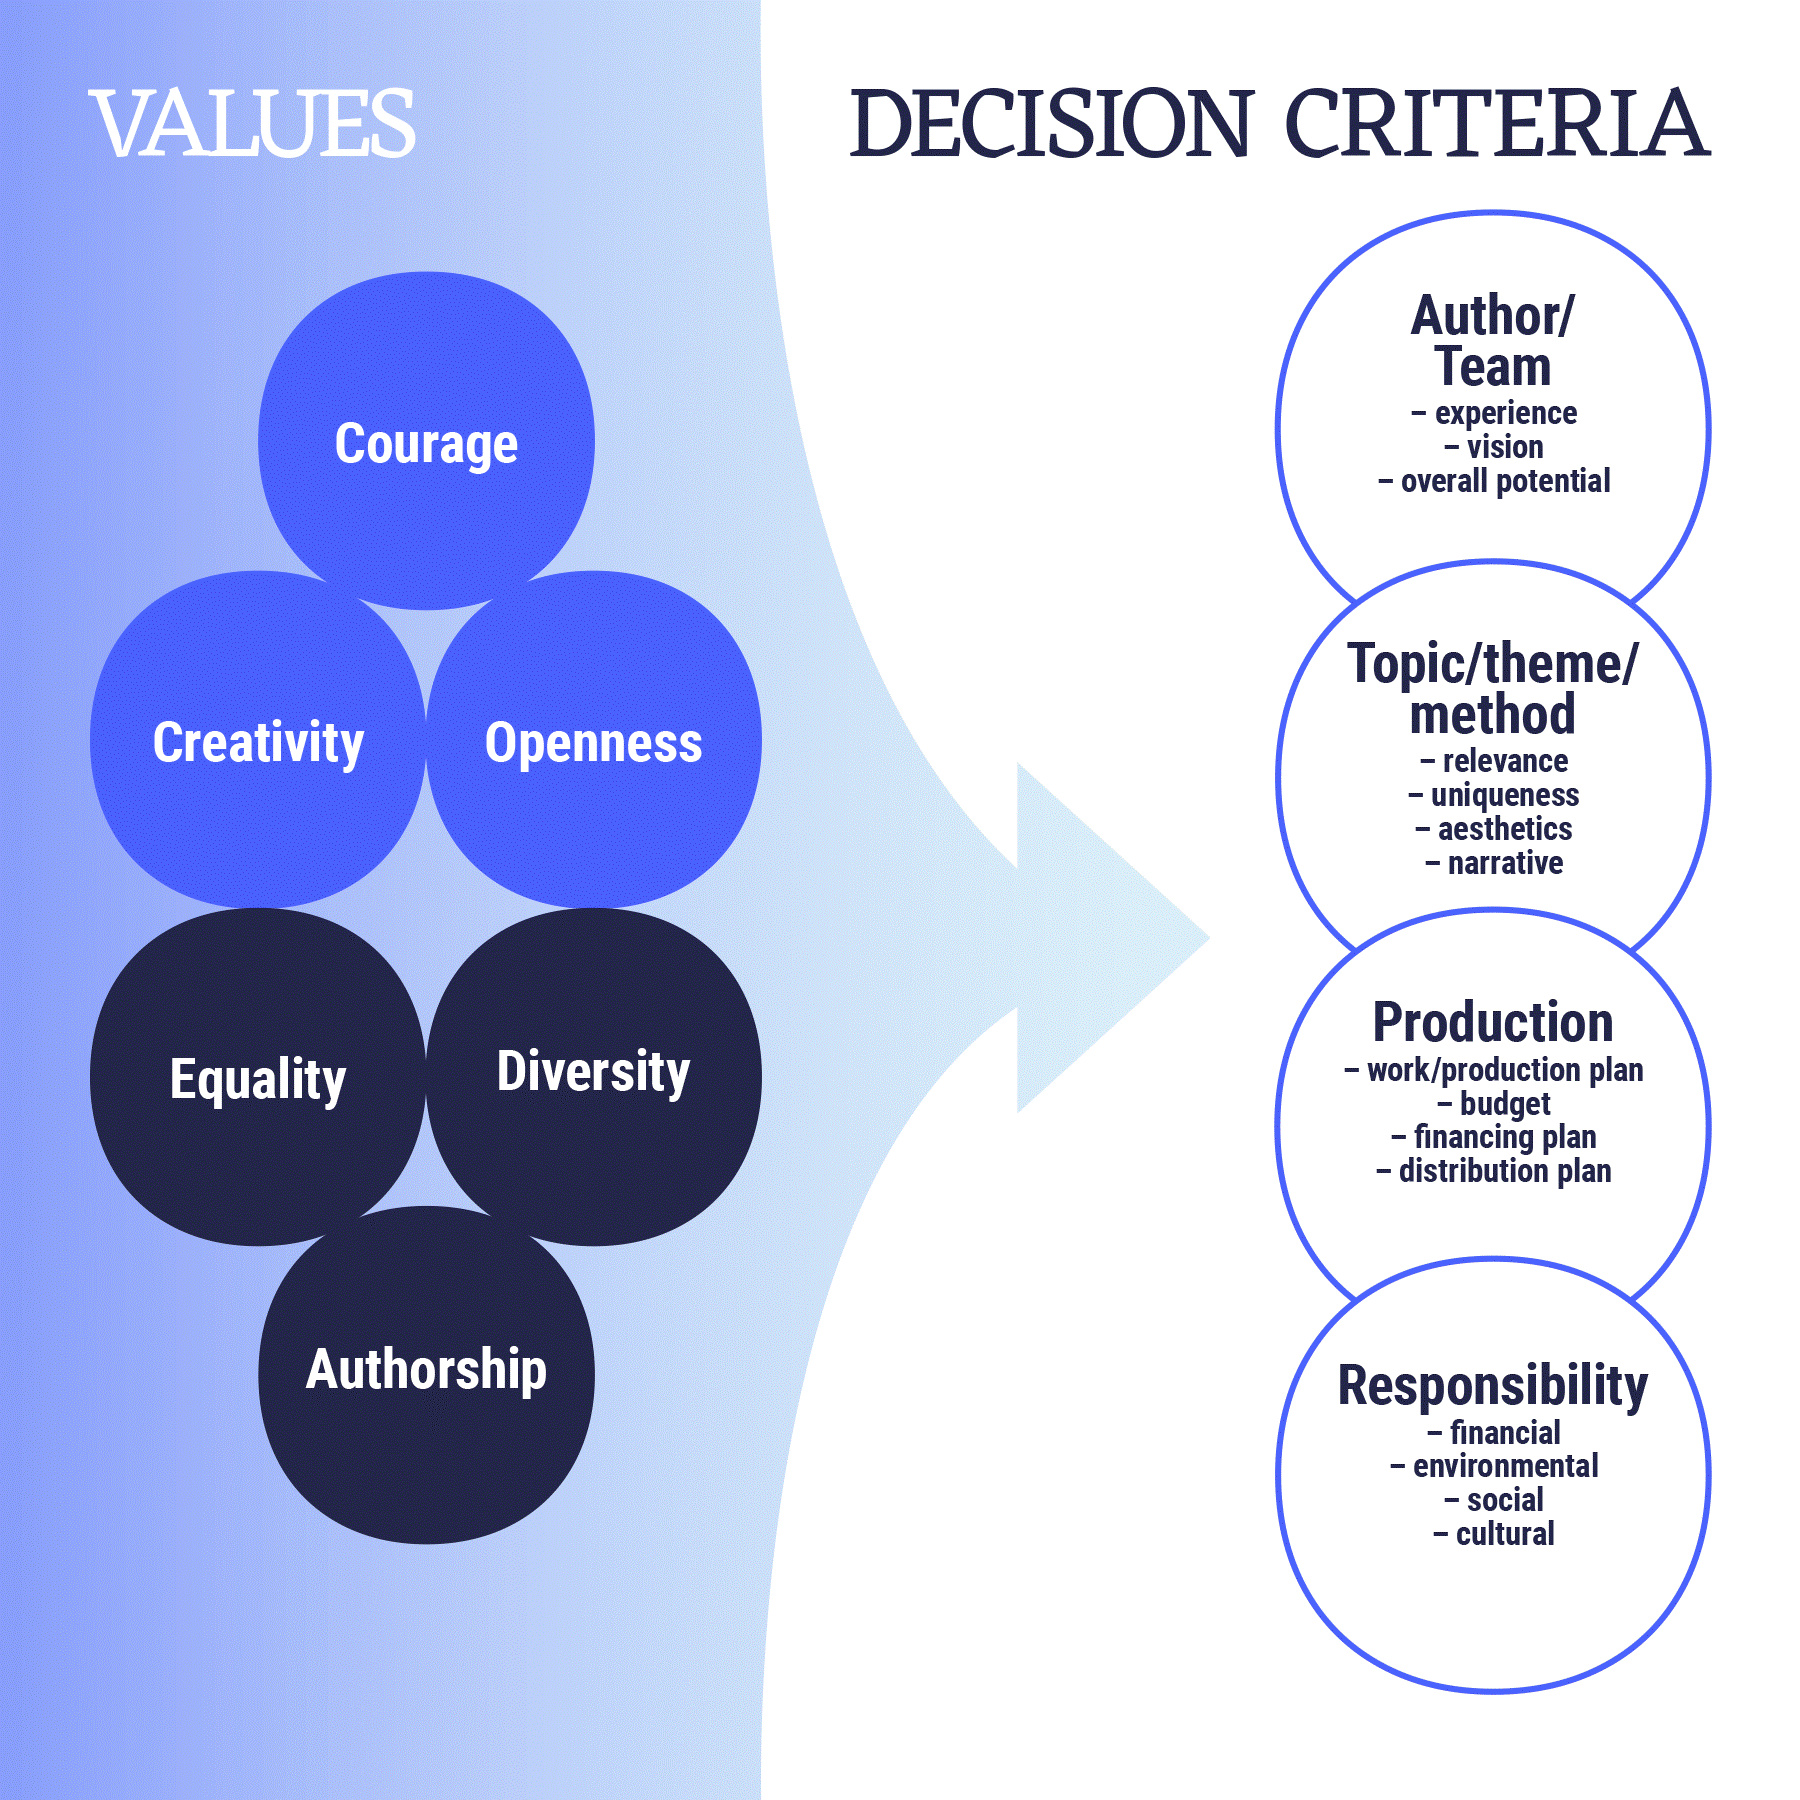 AVEK's decision criteria which are based on the values: courage, creativity, openness, equality, diversity and authorship. Decision criteria include author/team (experience, vision, overall potential), topic/theme/method (relevance, uniqueness, aesthetics, narrative), production (work/production plan, budget, financing plan, distribution plan) and responsibility (financial, environmental, social, cultural).